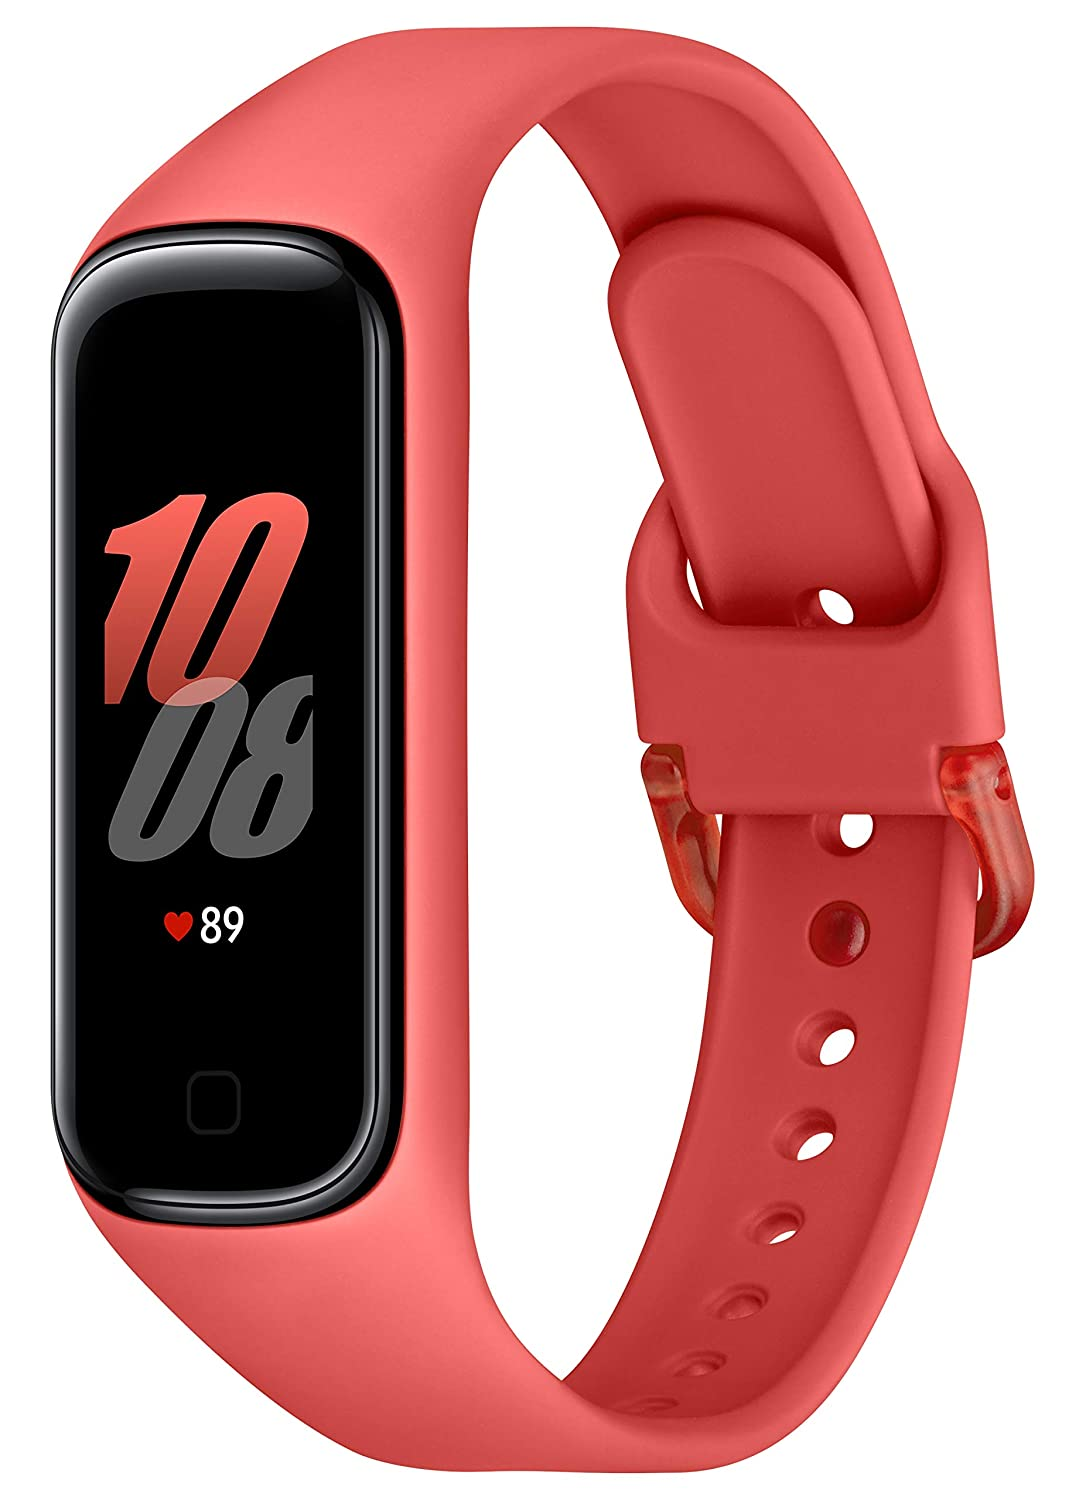 Best Samsung Fitness Band India